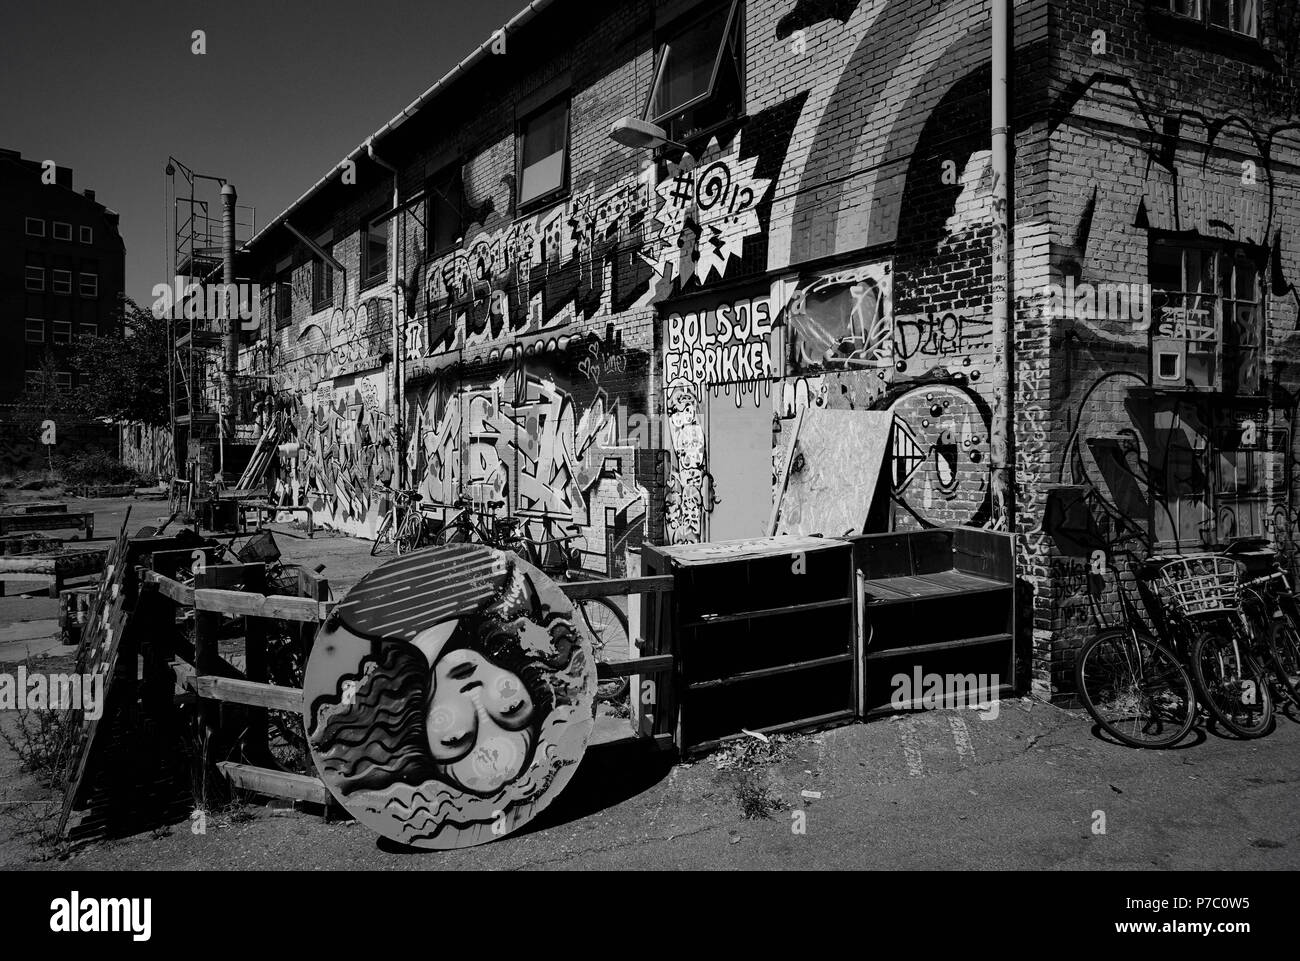 Urban Noerrebro in black and white, Copenhagen Denmark - Stock Image